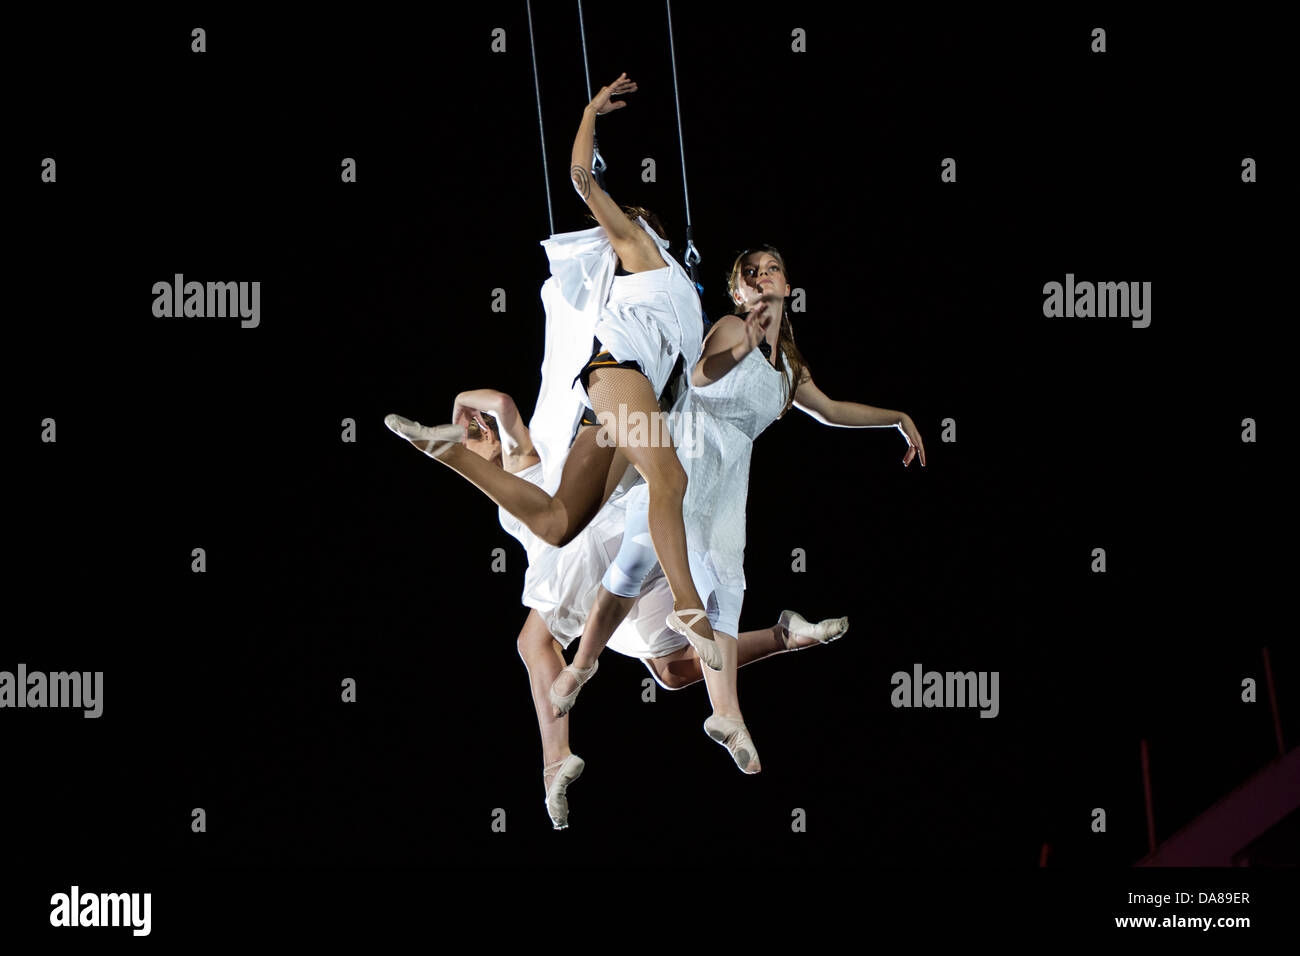 Dancers performing in the air - Stock Image